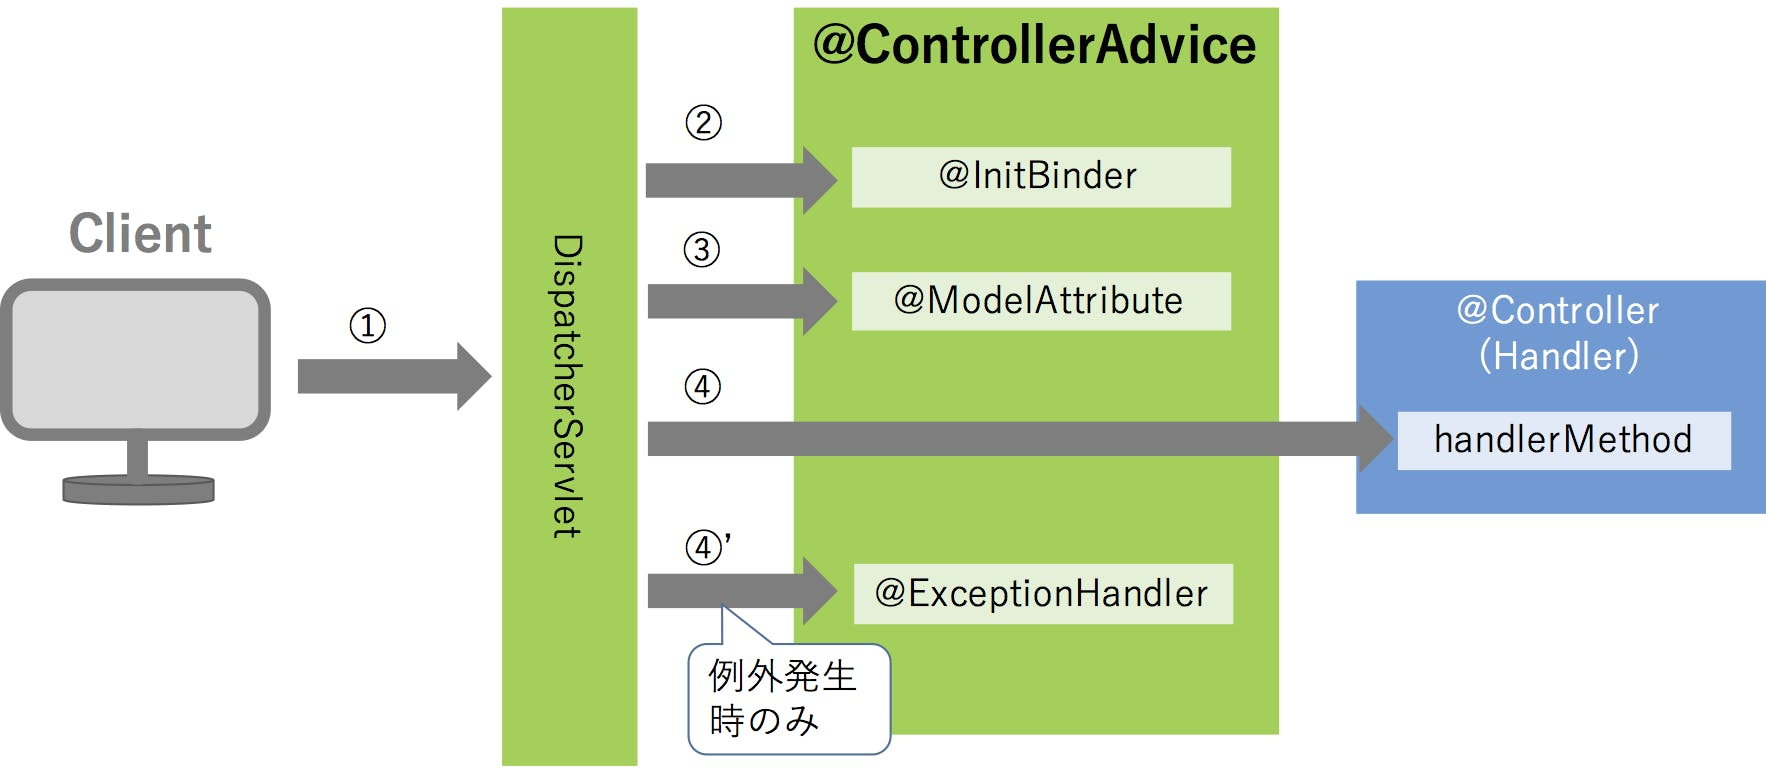 controllerAdvice.png